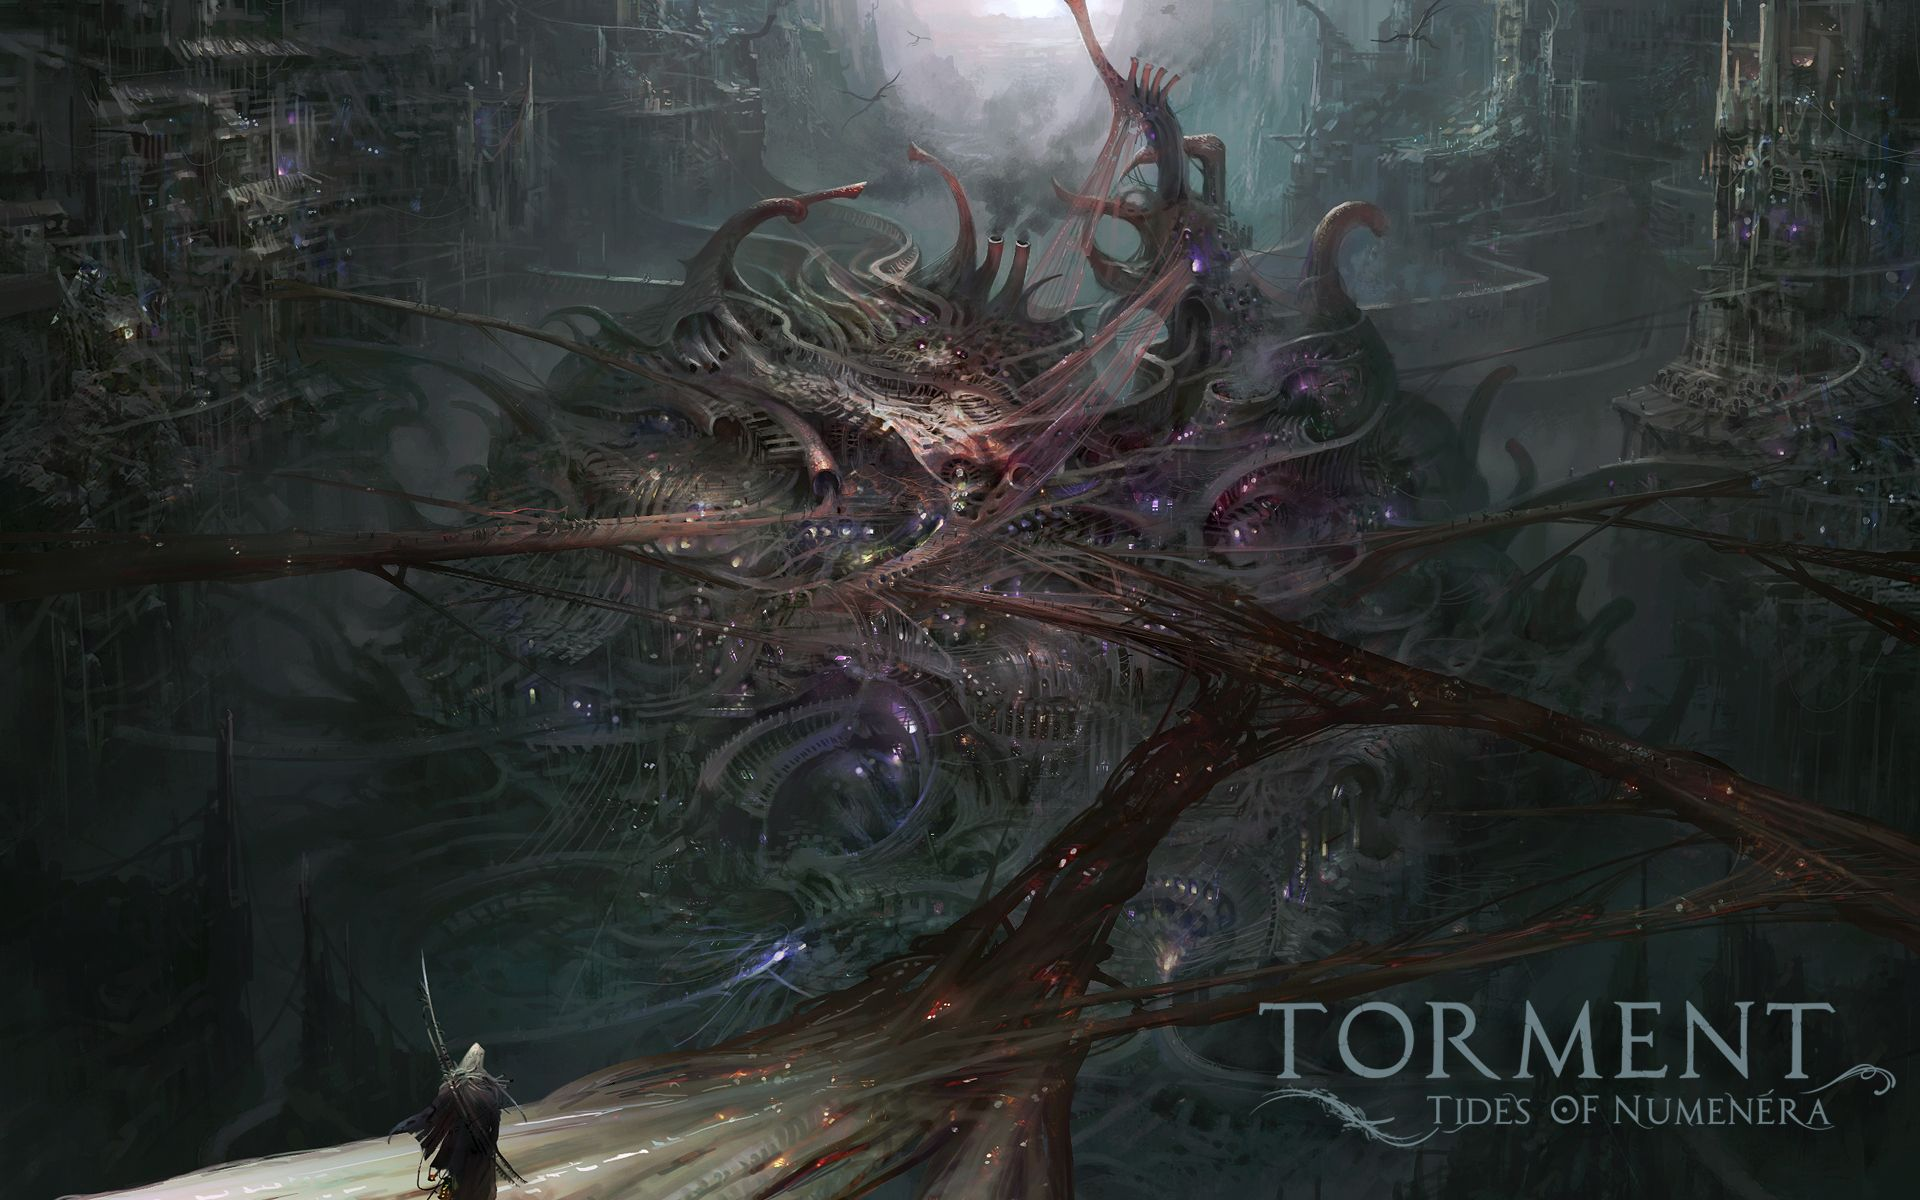 https://cdn.inxile-entertainment.com/torment/img/pages/media/backgrounds/sojourner_of_worlds/logo/1920x1200.jpg